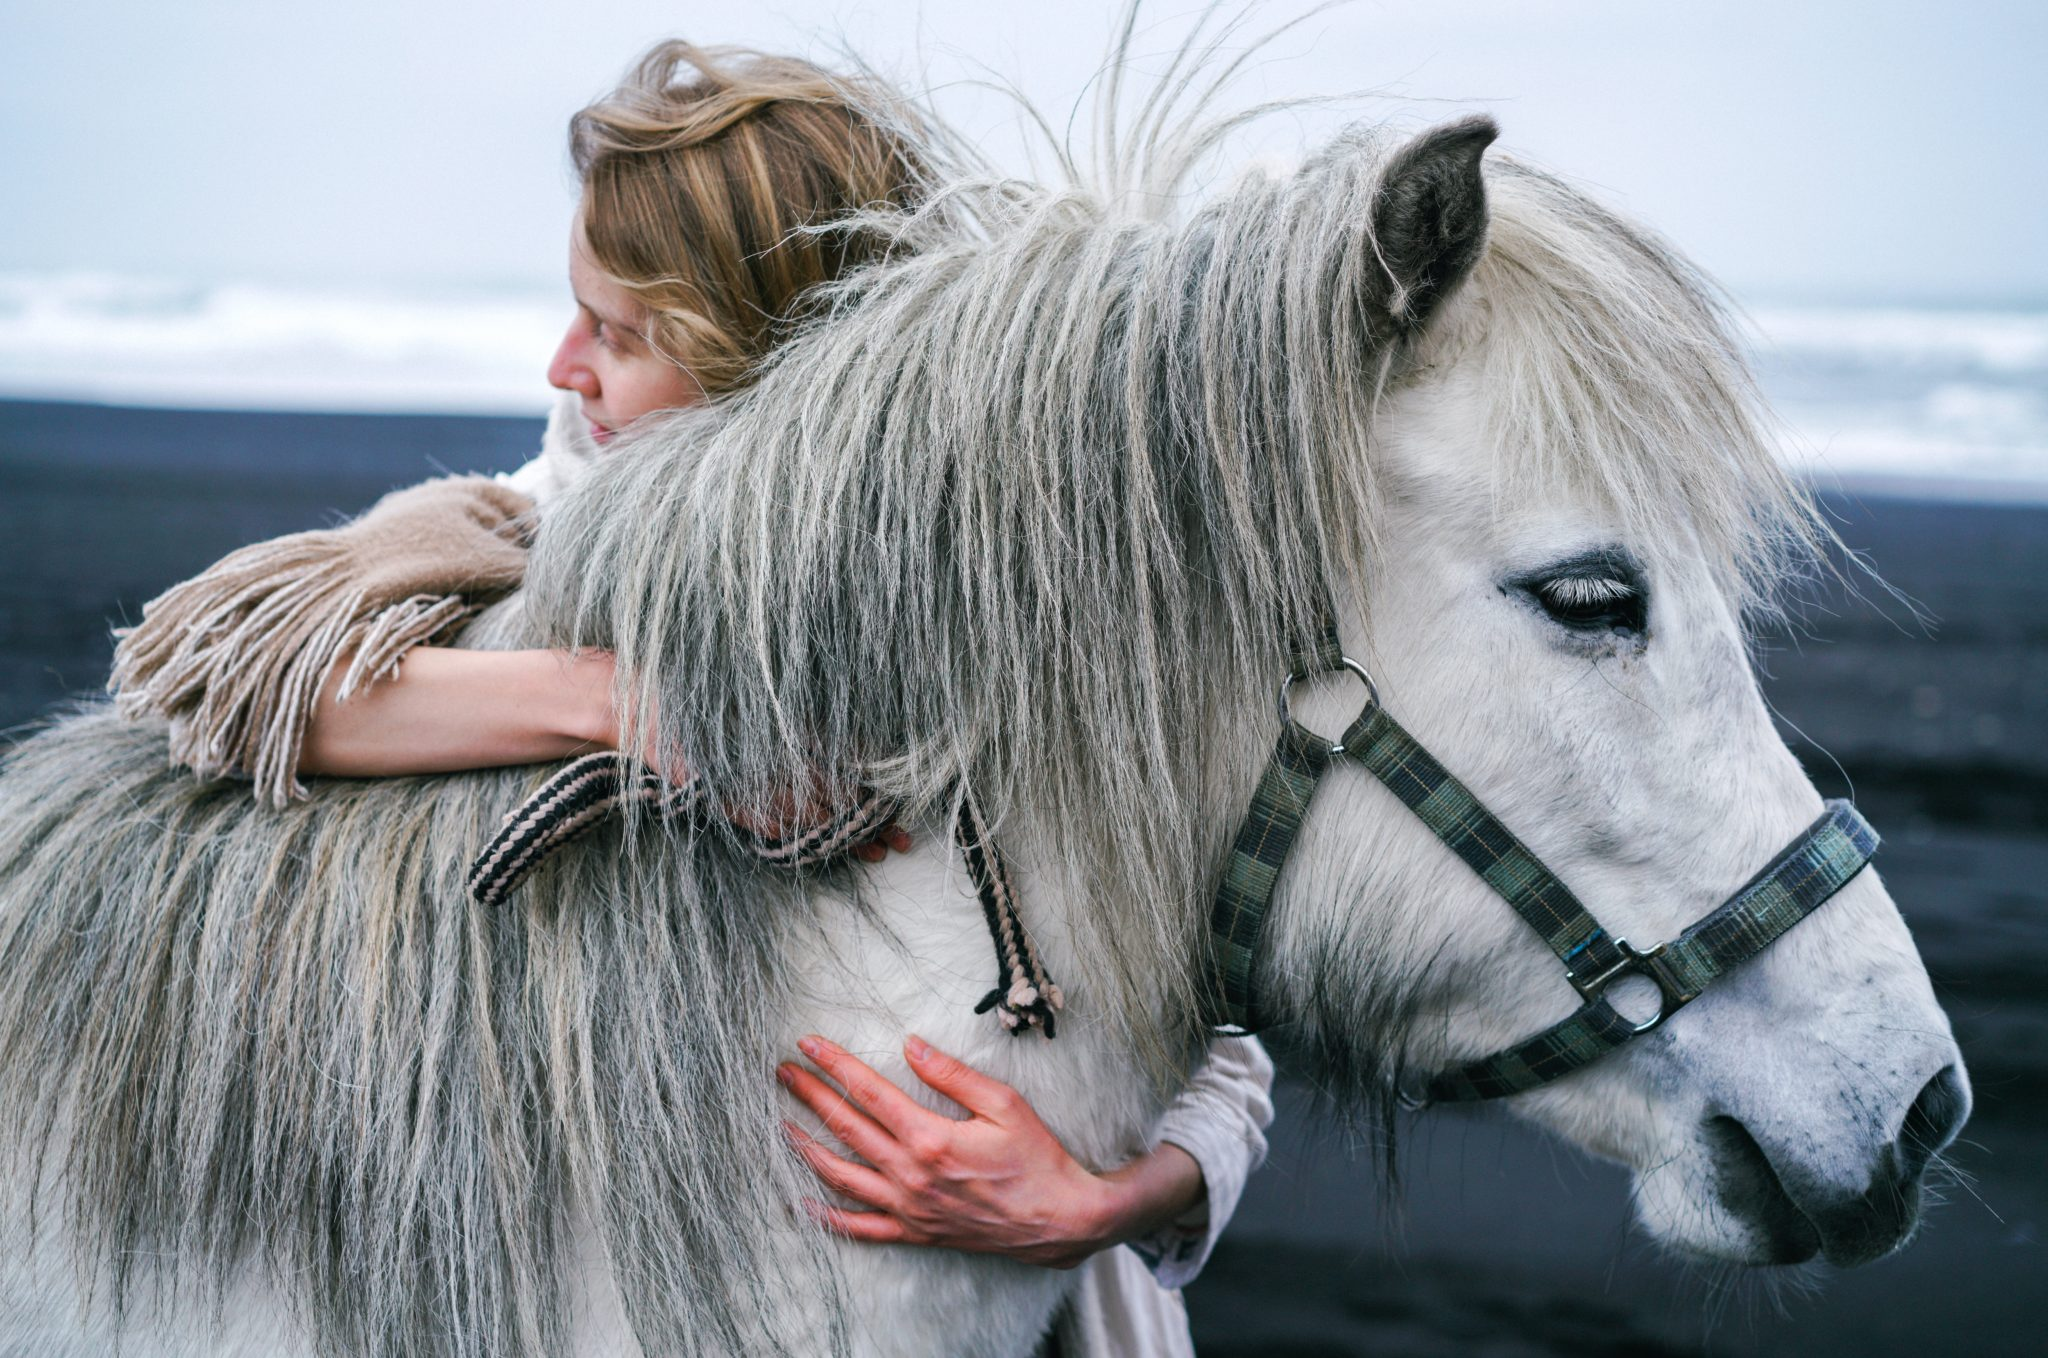 https://www.pexels.com/photo/woman-embracing-gently-gray-horse-on-beach-4344258/